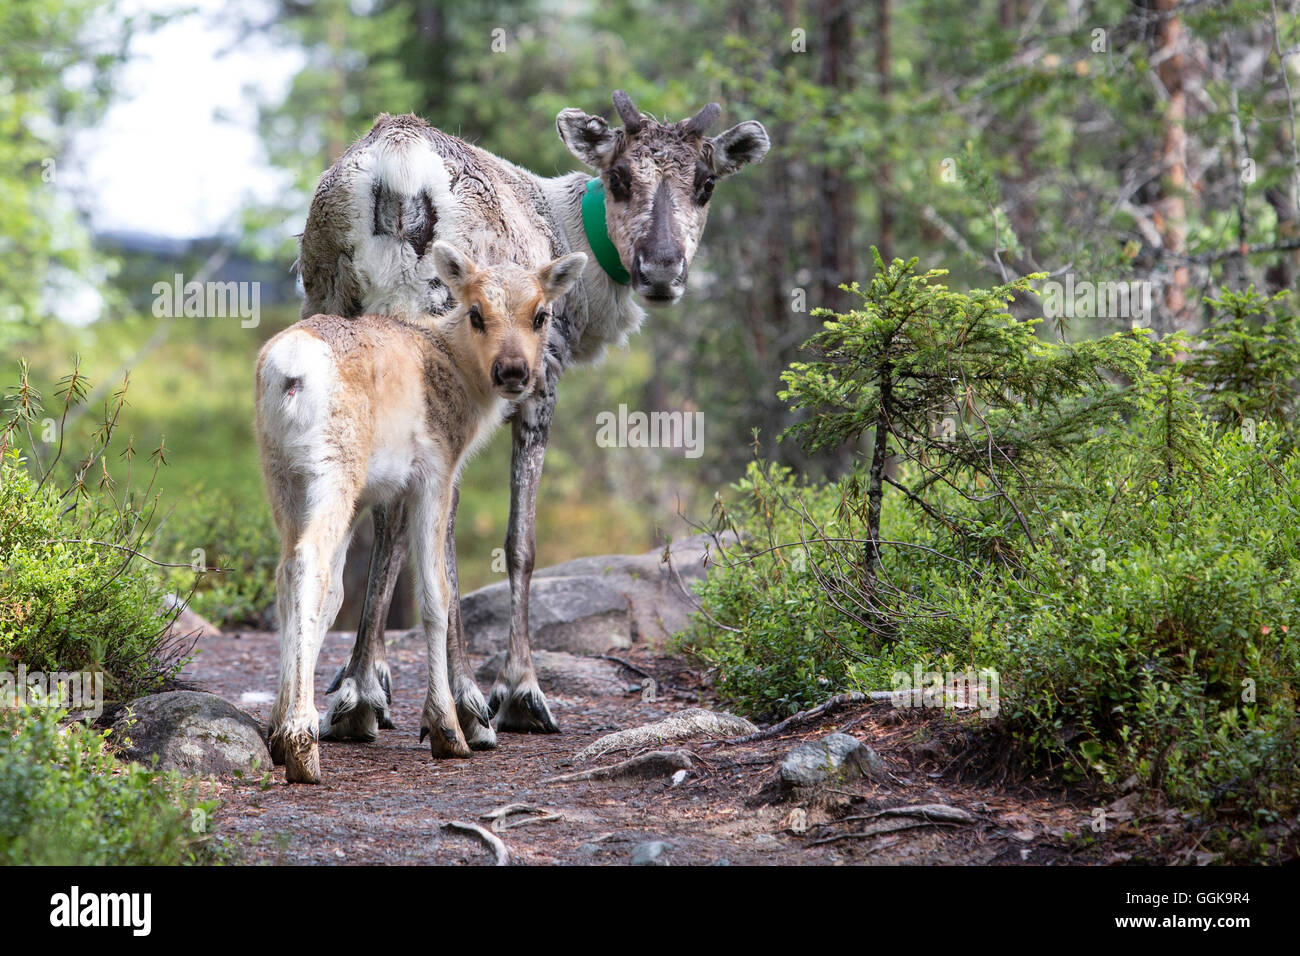 Reindeer and young animal, Oulanka National Park, Northern Ostrobothnia, Finland - Stock Image